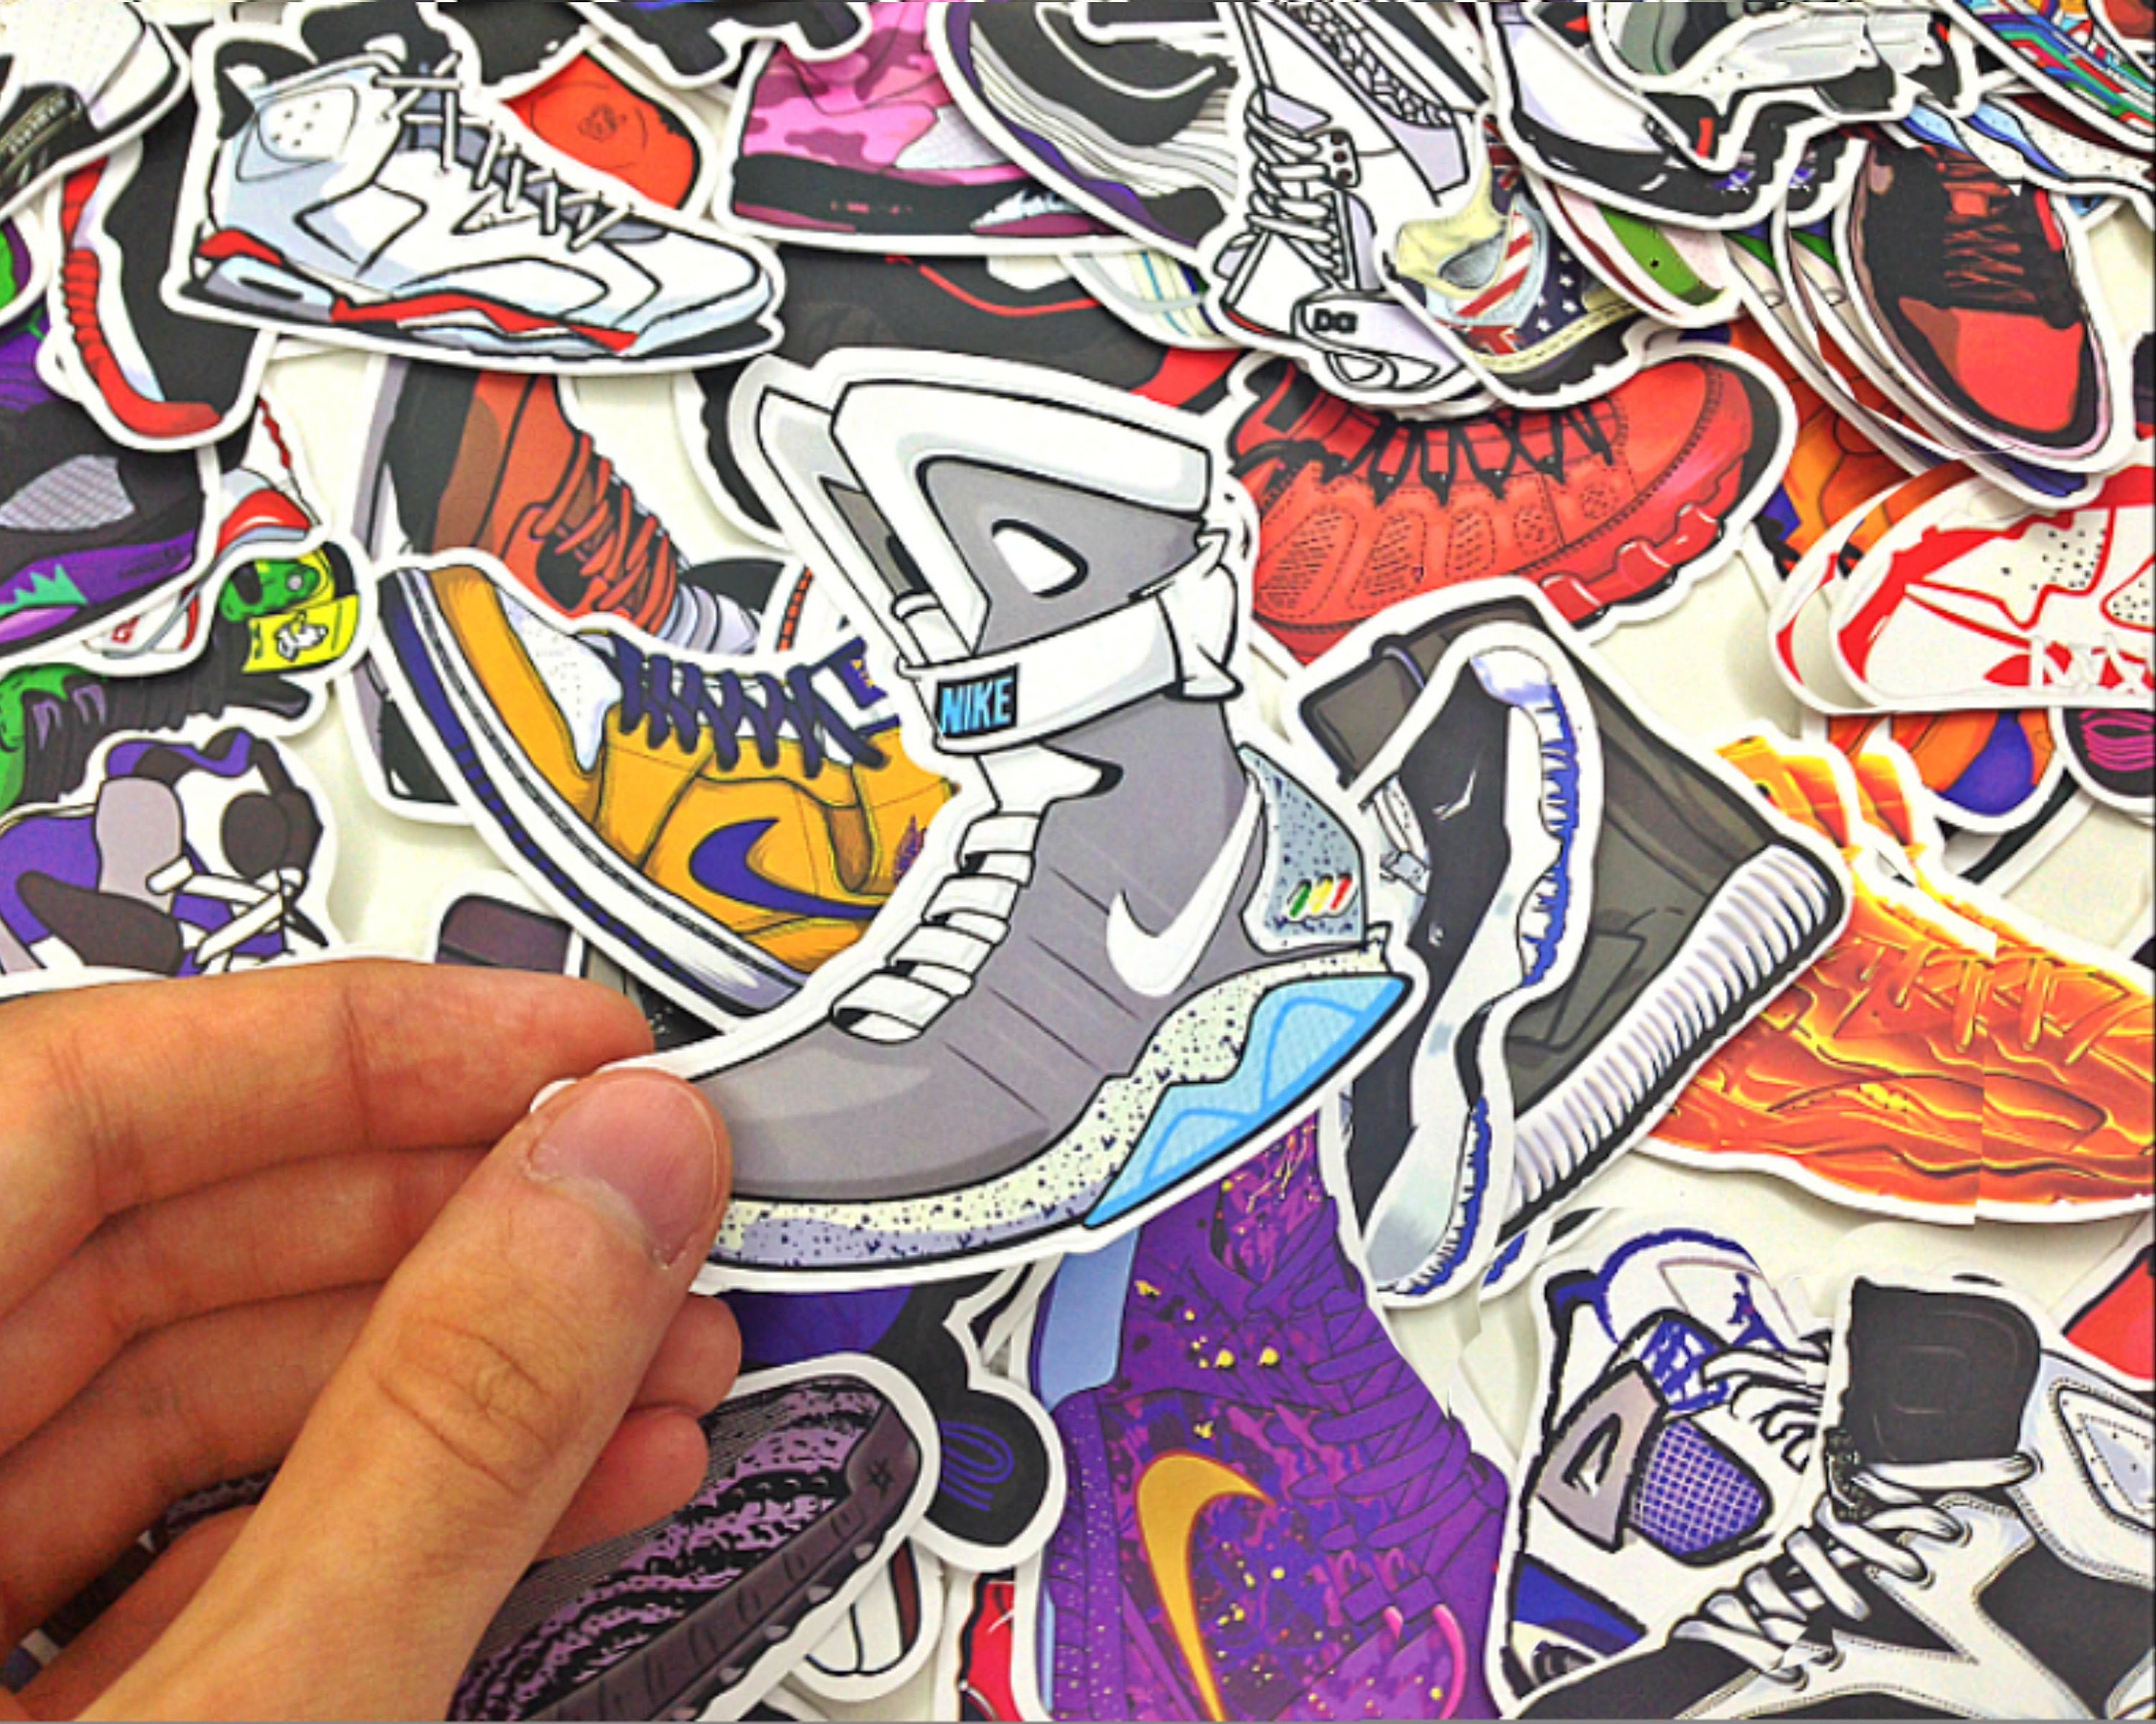 Sticker bombing sticker pack bright hypebeast stickers